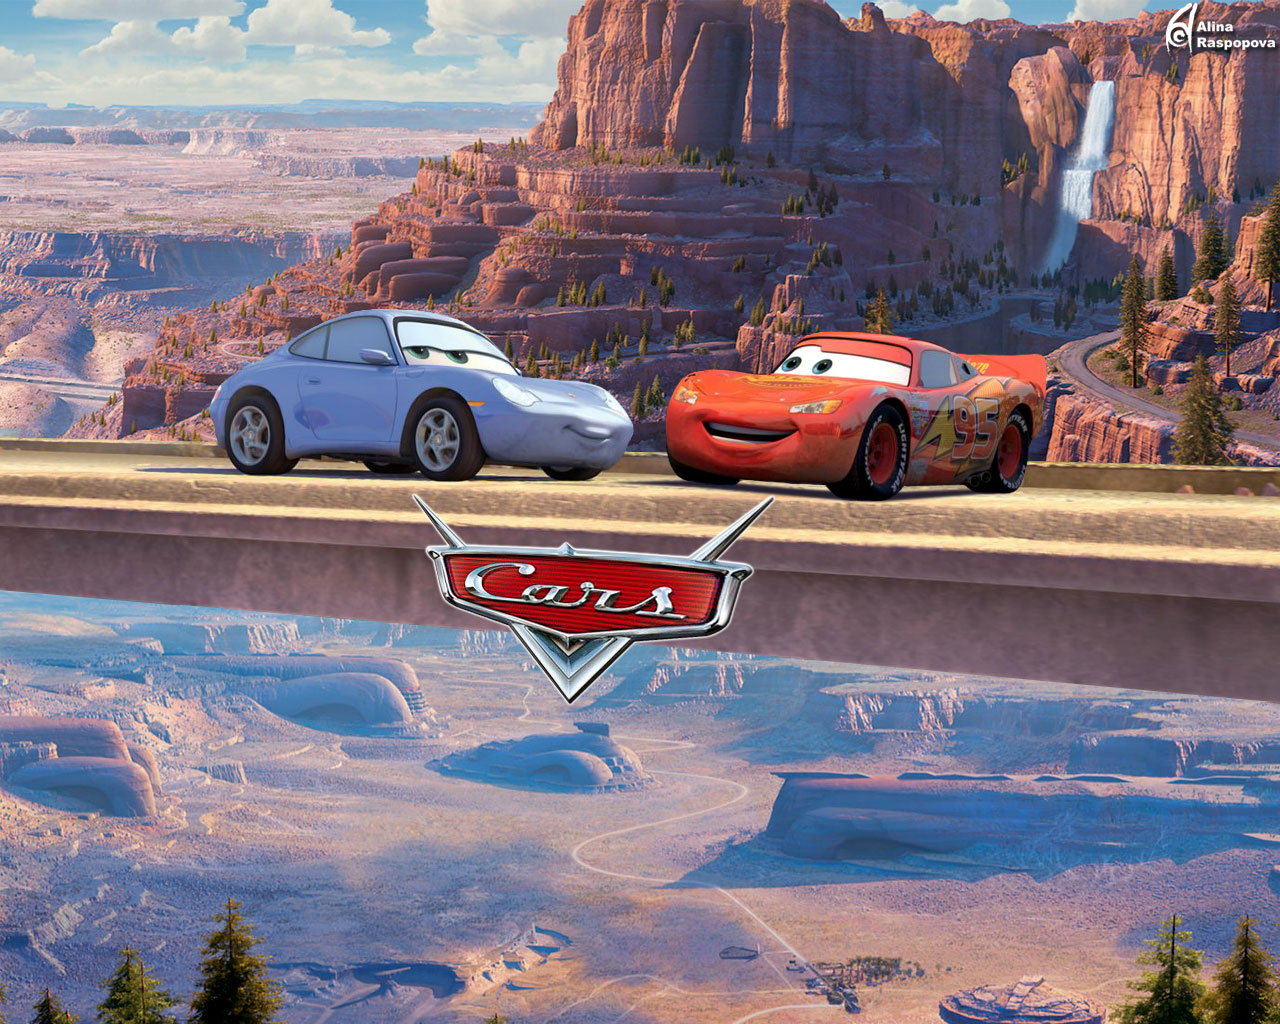 1280x1024 - Wallpaper Cars Cartoon 47